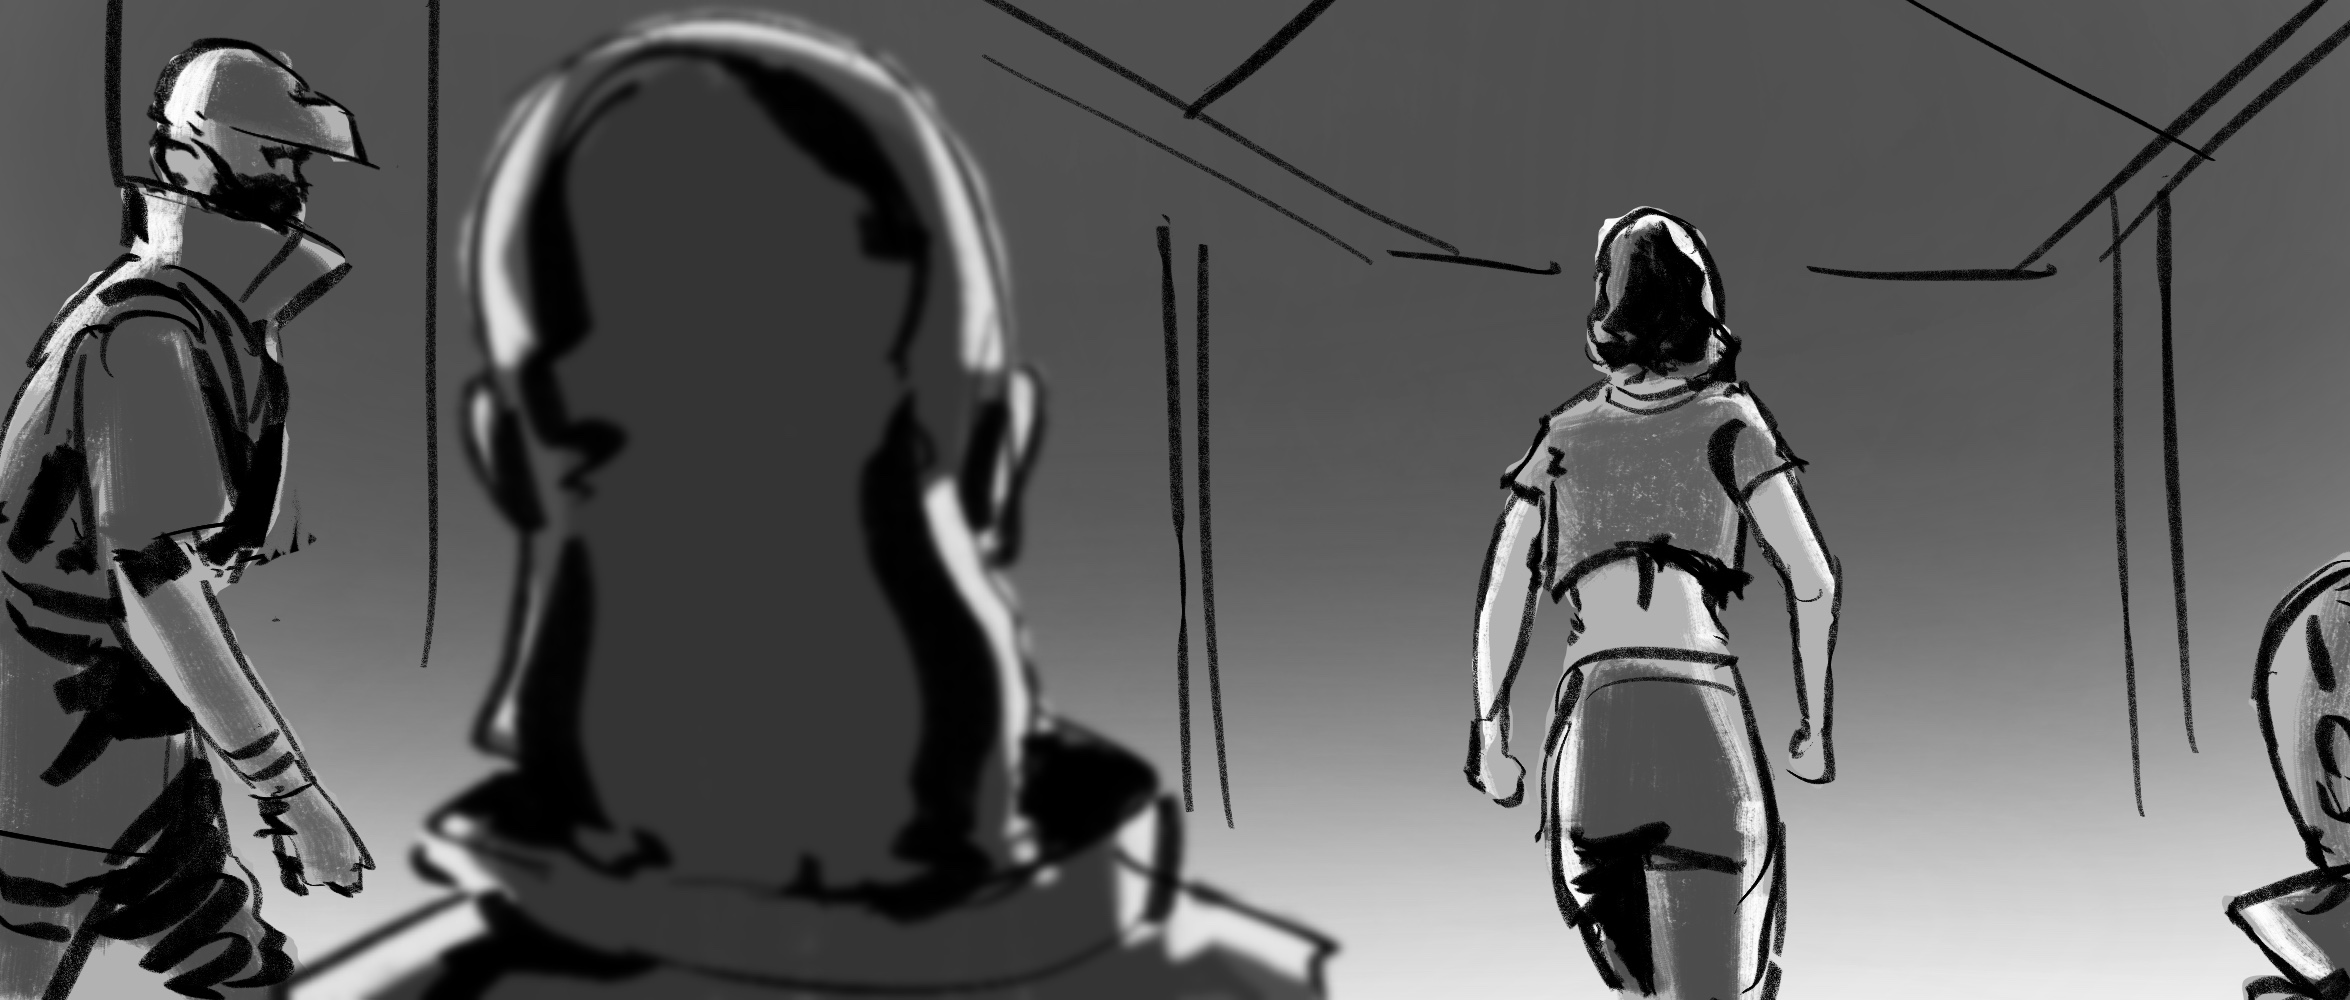 Lena_Boundaries_Storyboard_13_v02.jpg